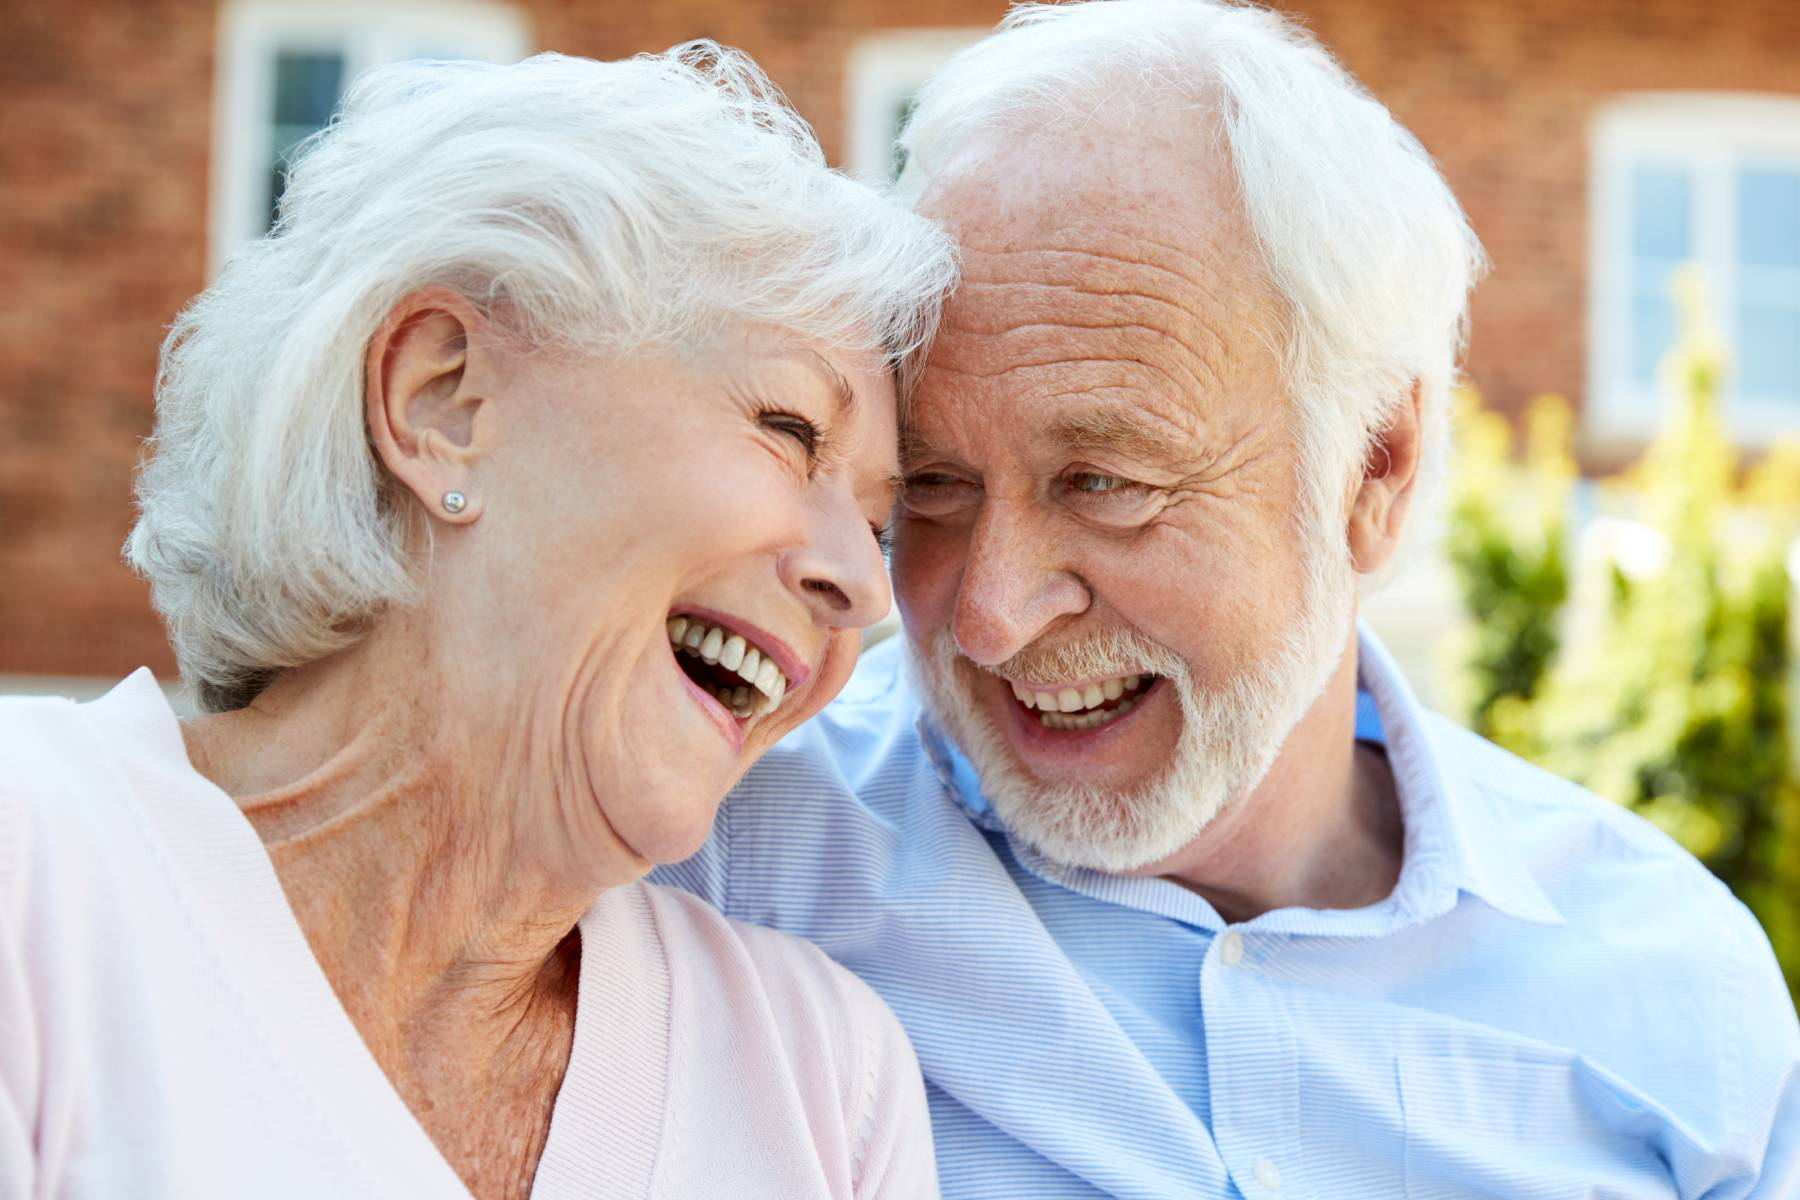 senior couple in assisted living smiling and laughing outside